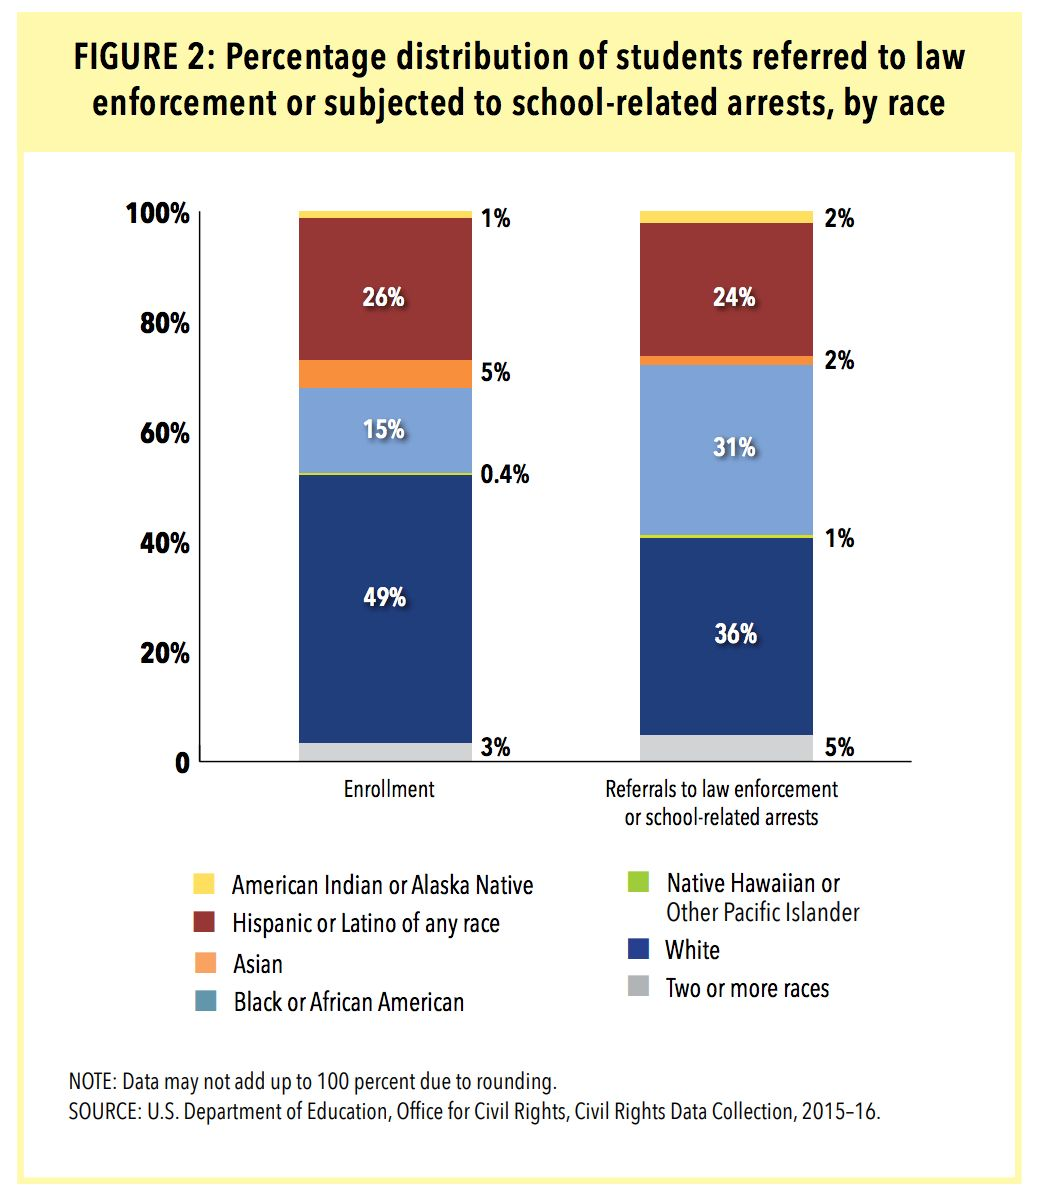 Racial disparities rise in school discipline, new data shows